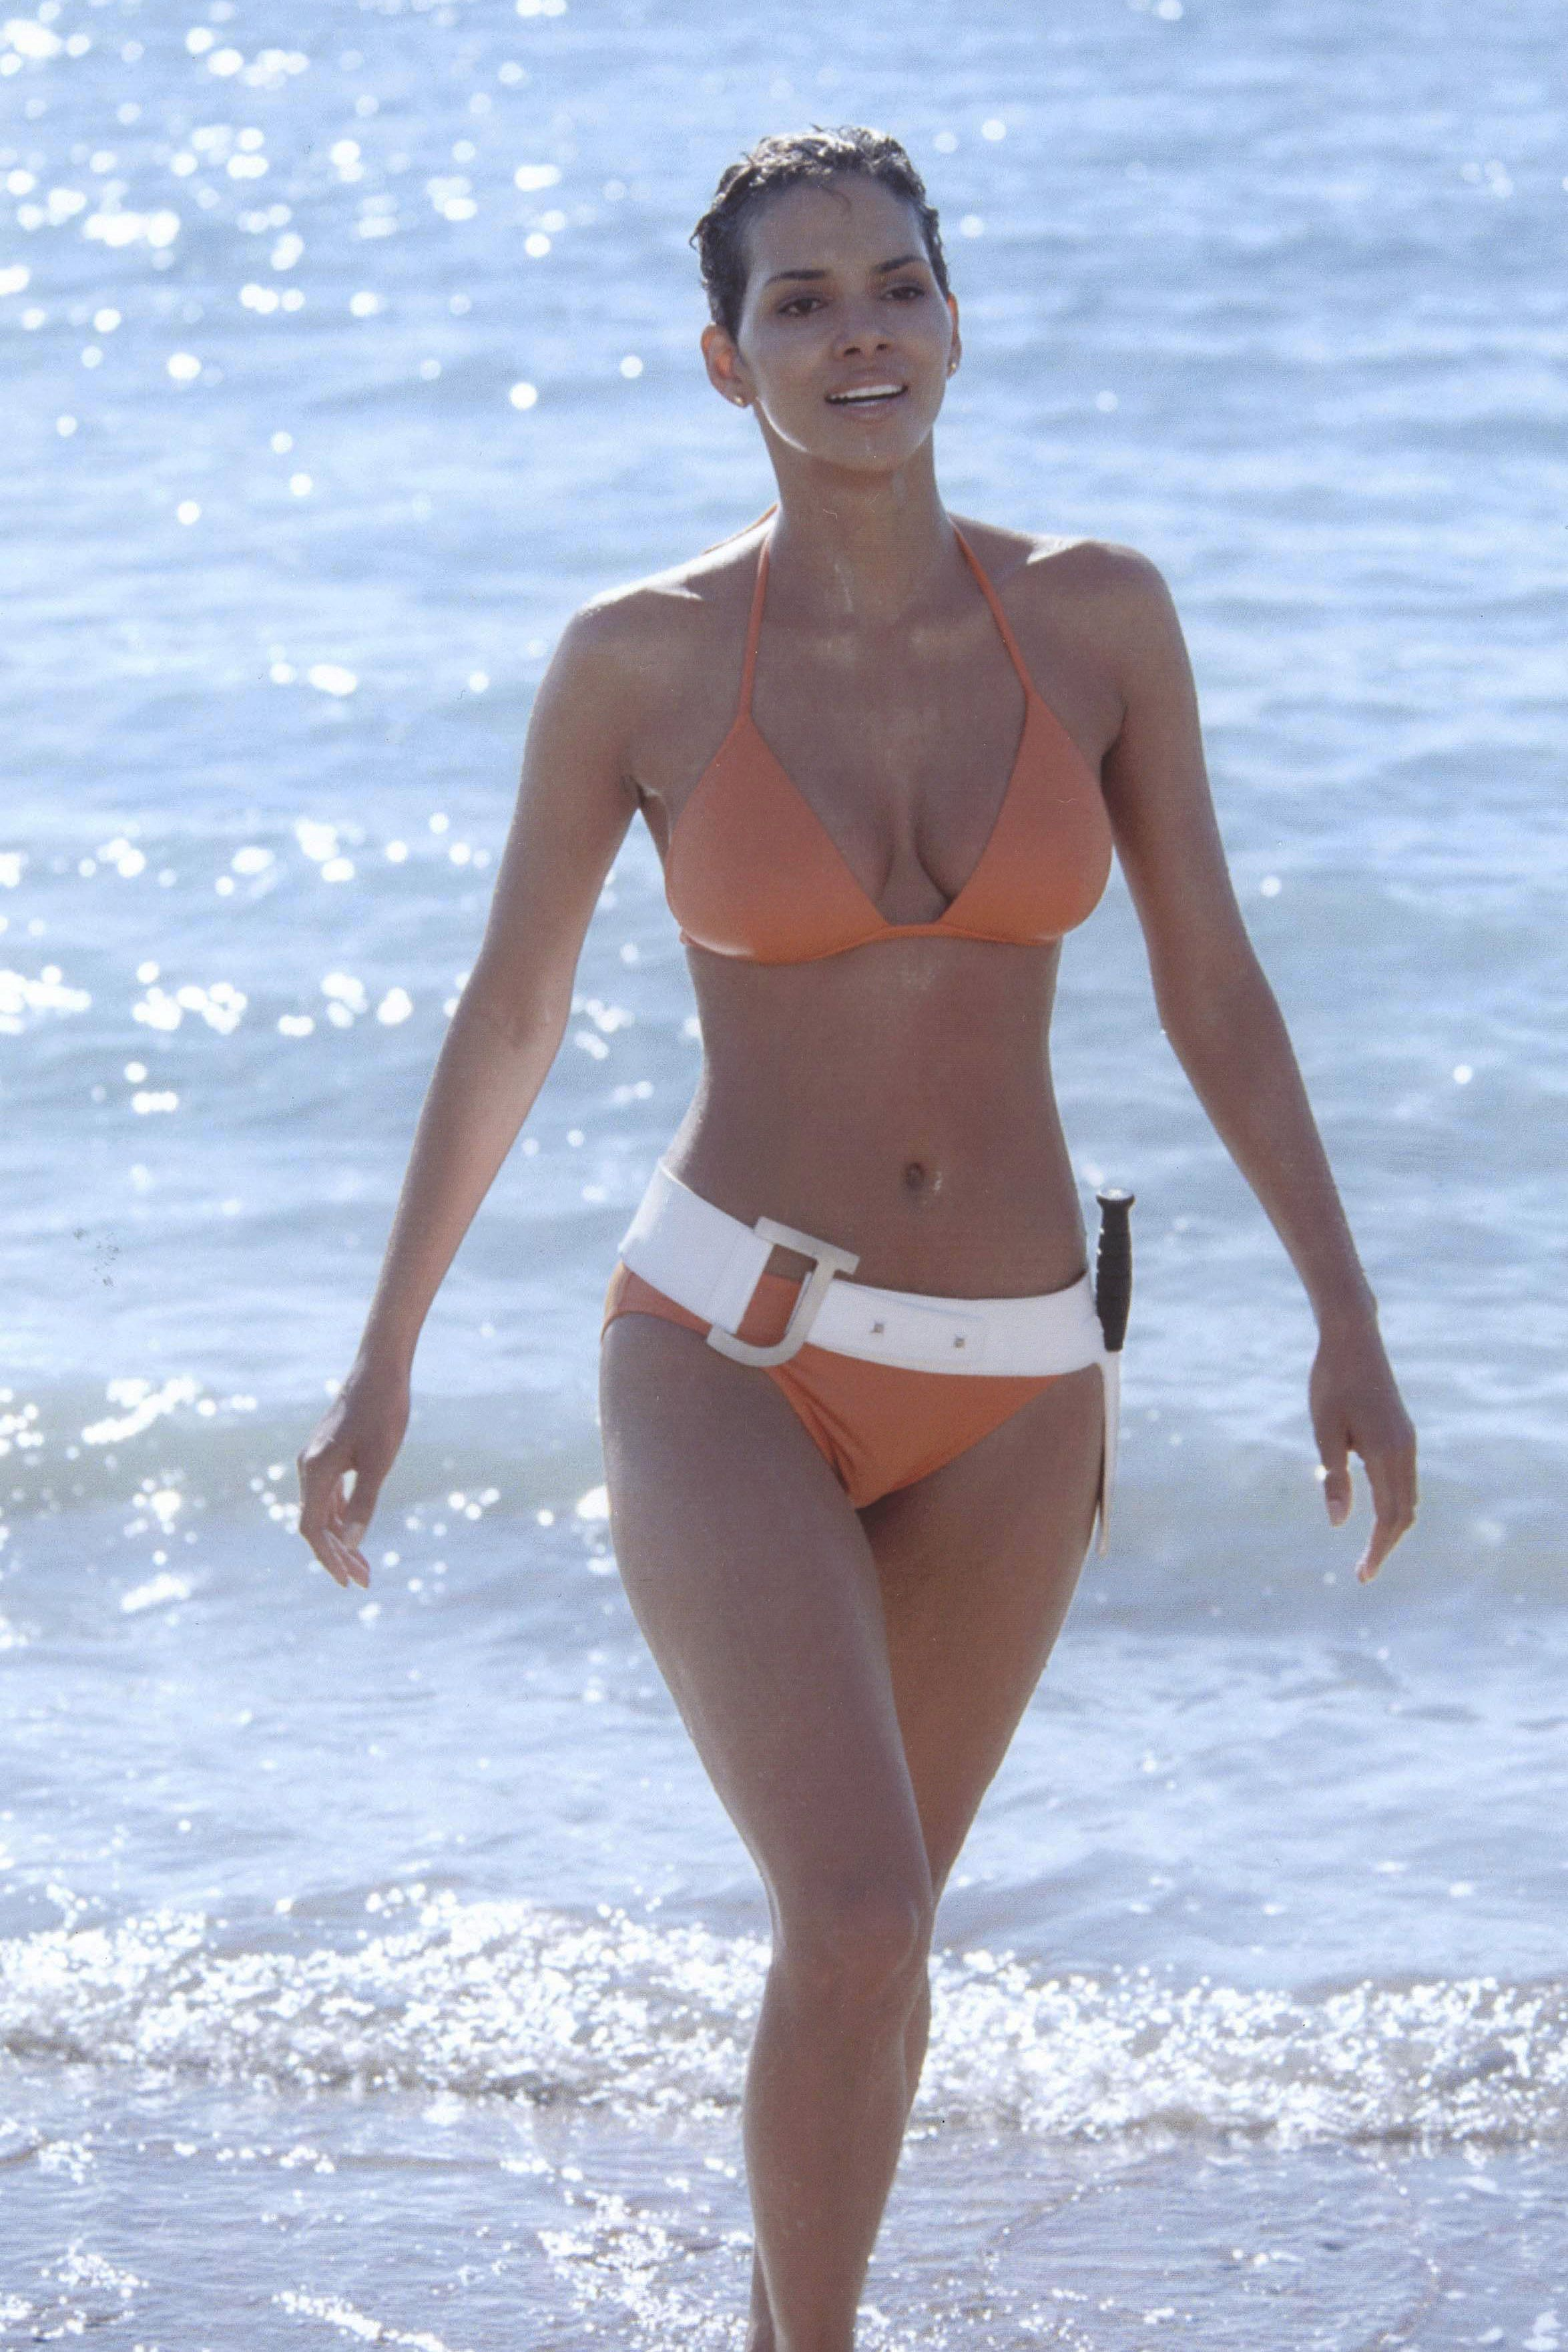 Halle Berry, 53, just recreated her iconic 'Bond girl' bikini moment 18 years later